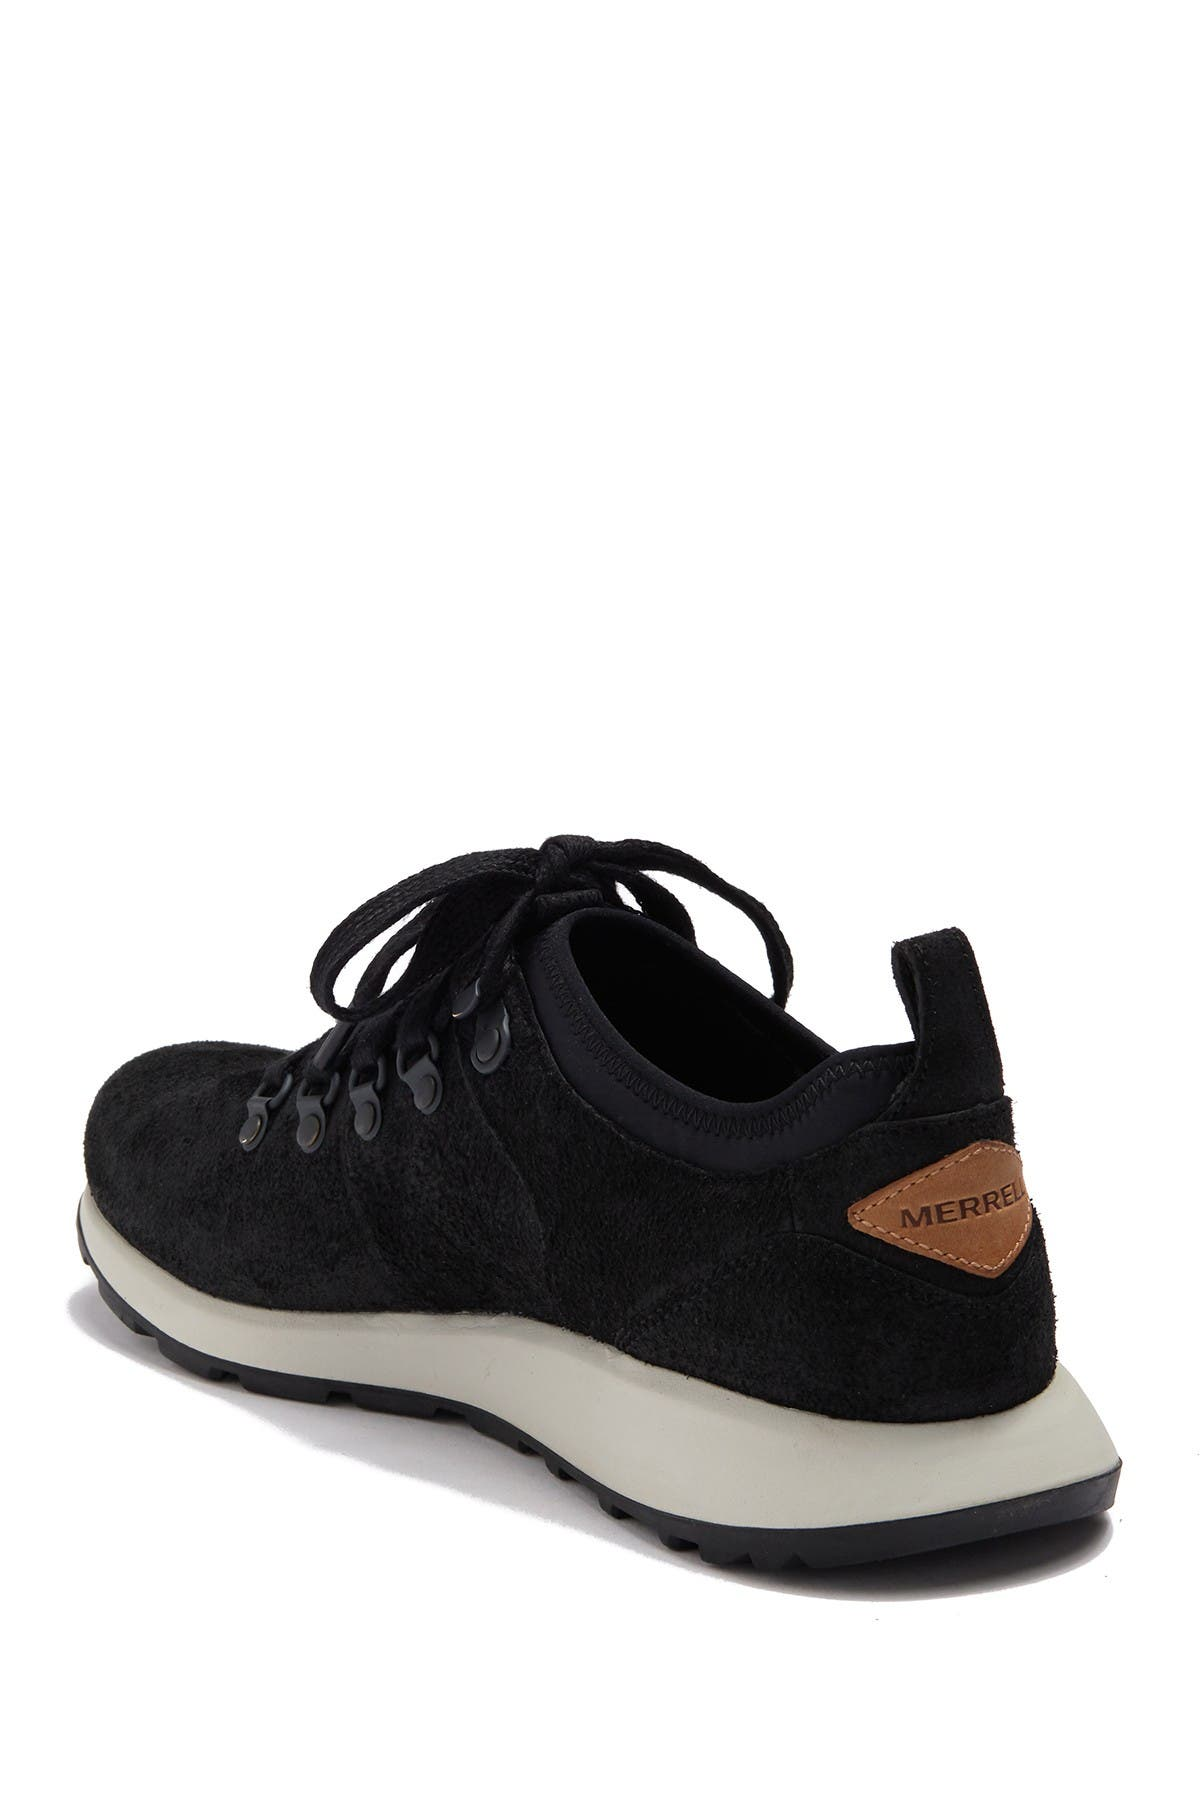 Image of Merrell Ashford Classic Lace-Up Sneaker